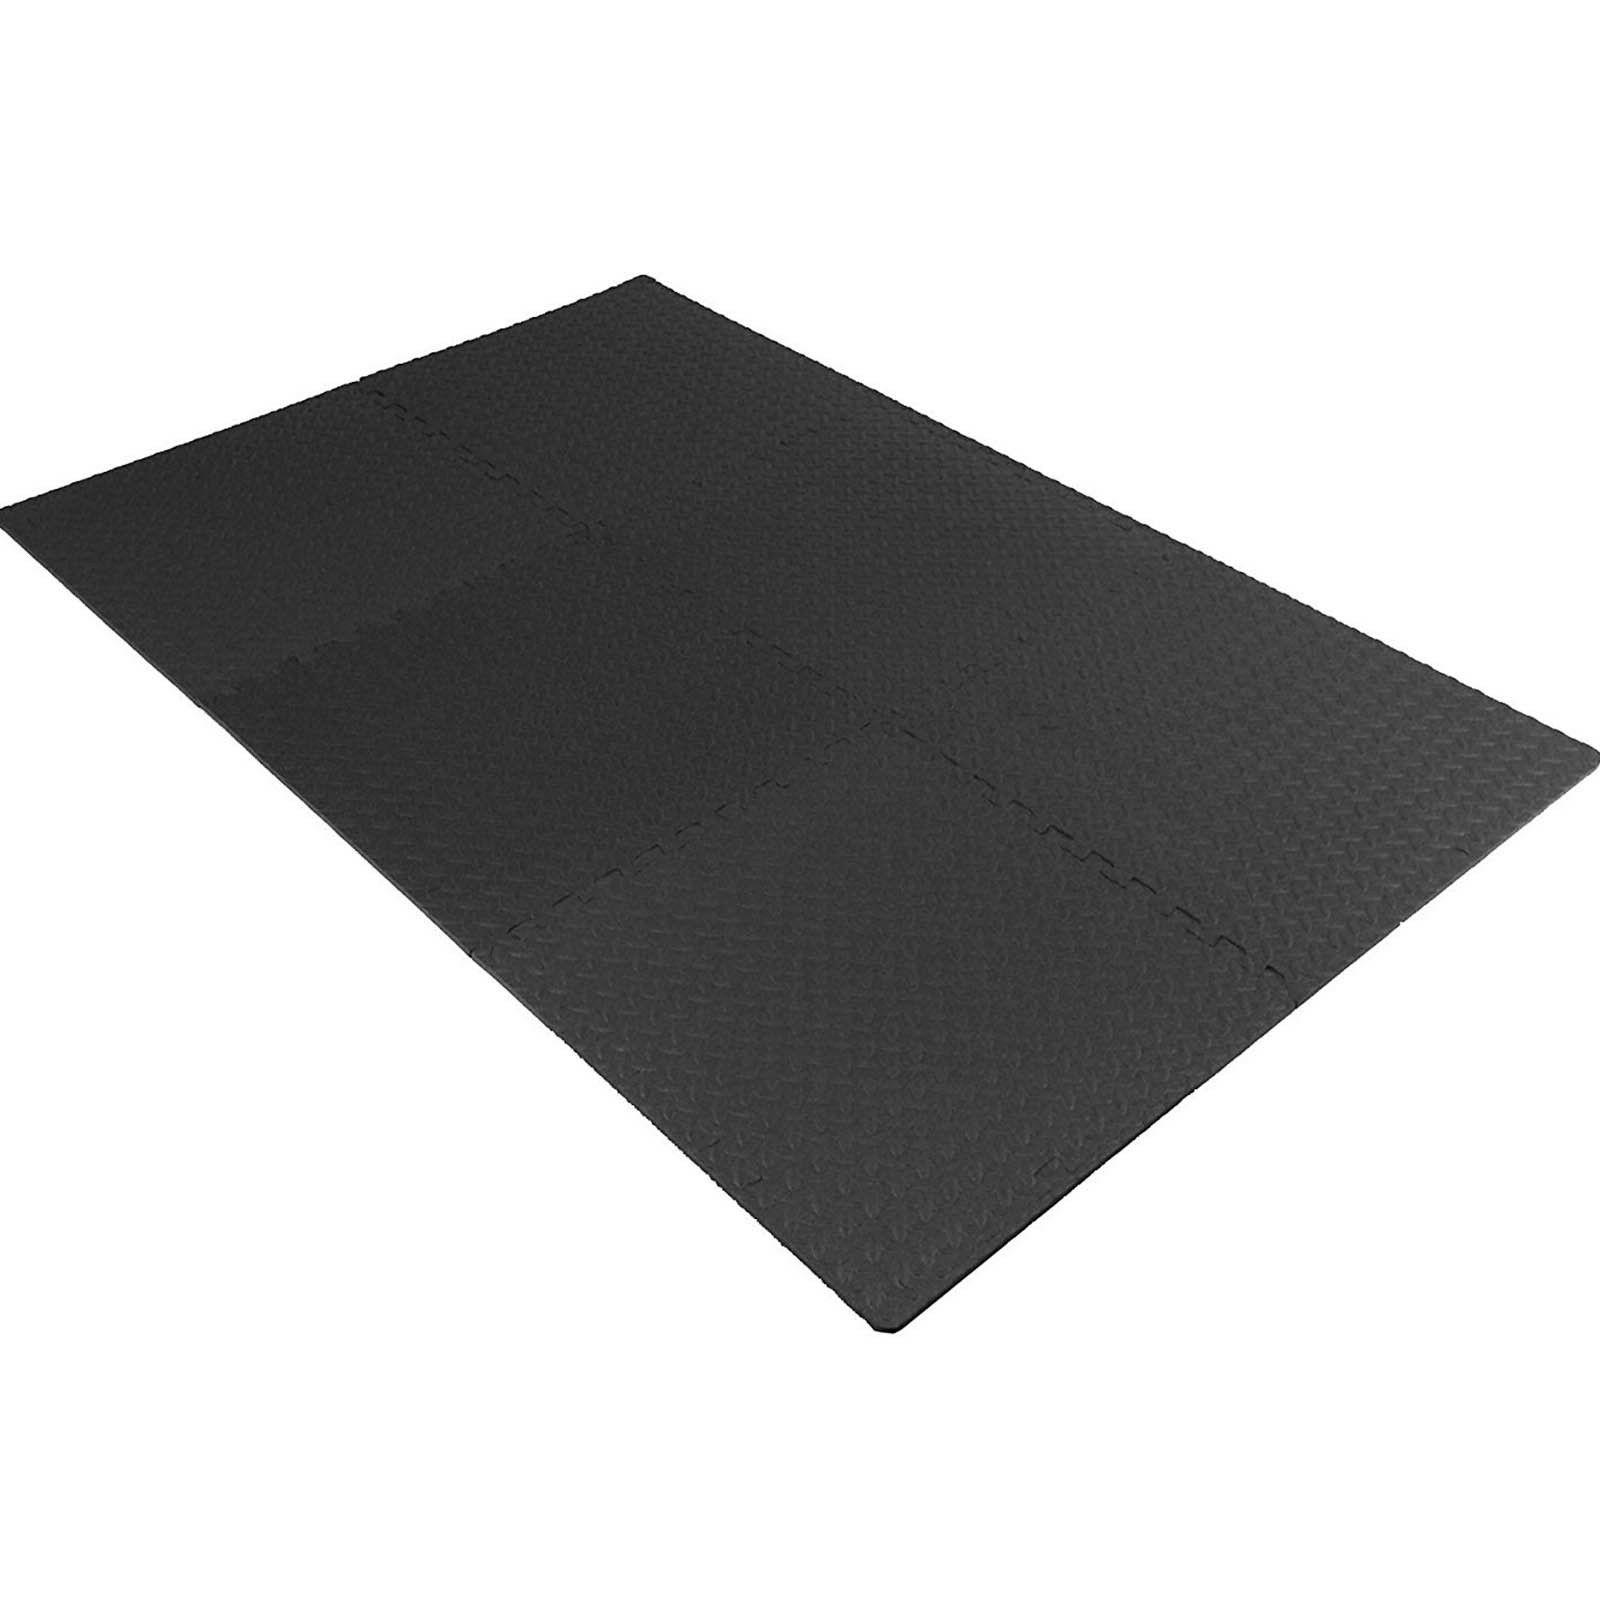 Exercise Gym Floor Tiles Puzzle